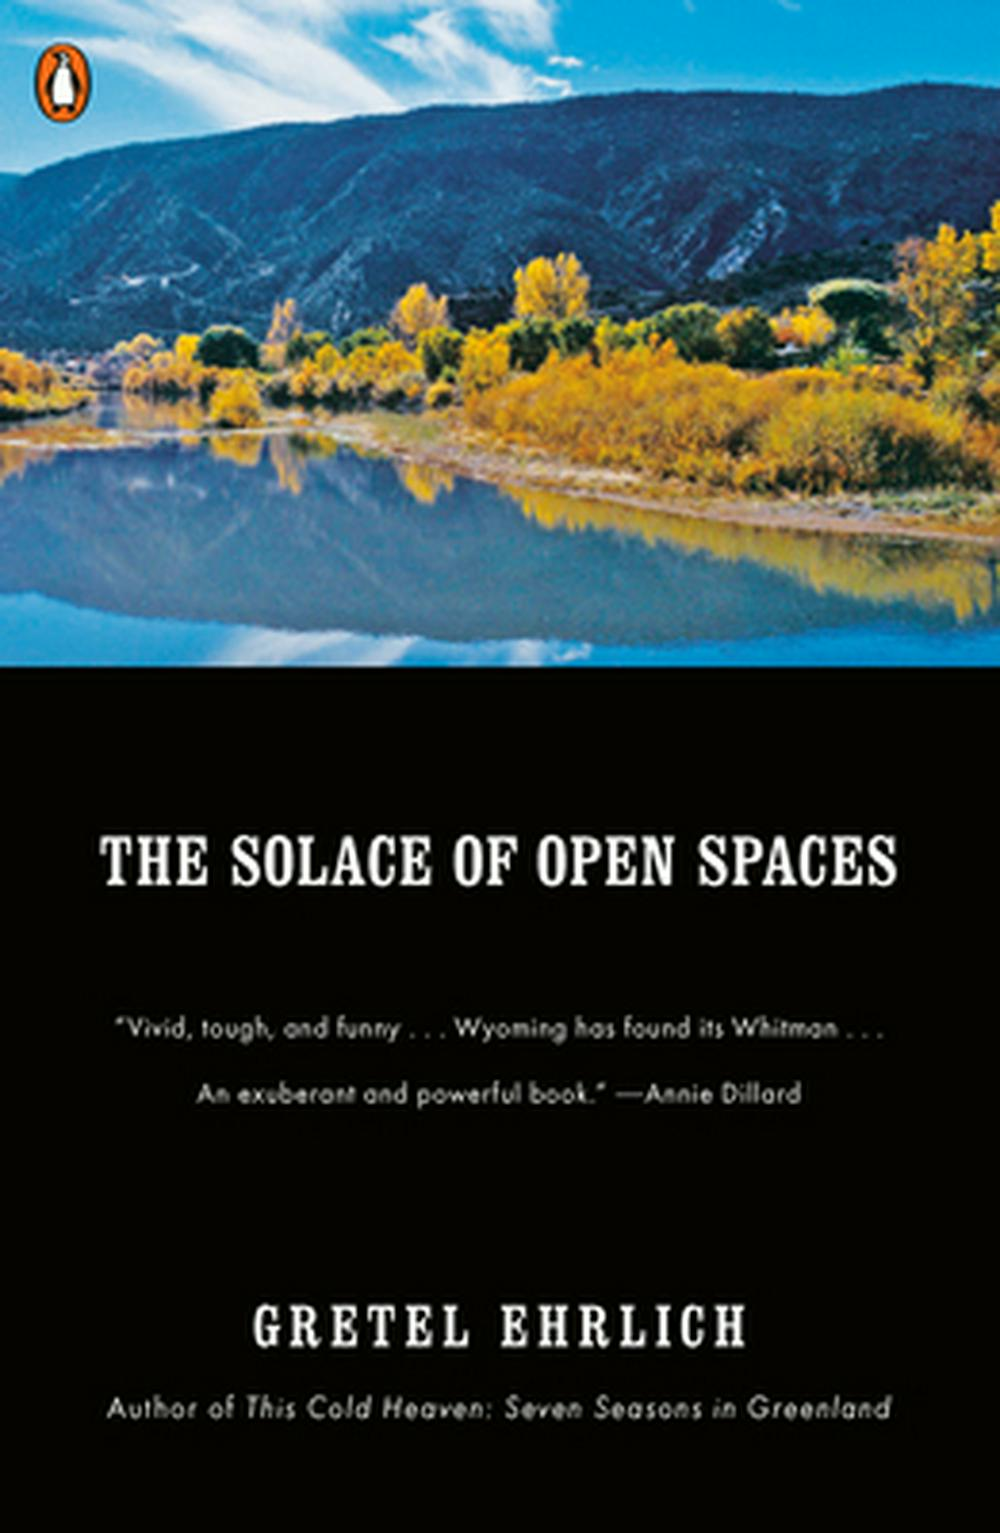 wyoming the solace of open spaces by gretel erlich essay Thoreau and wilderness search this site the solace of open spaces was first this essay will explore various reviews and receptions of ehrlich's work to.